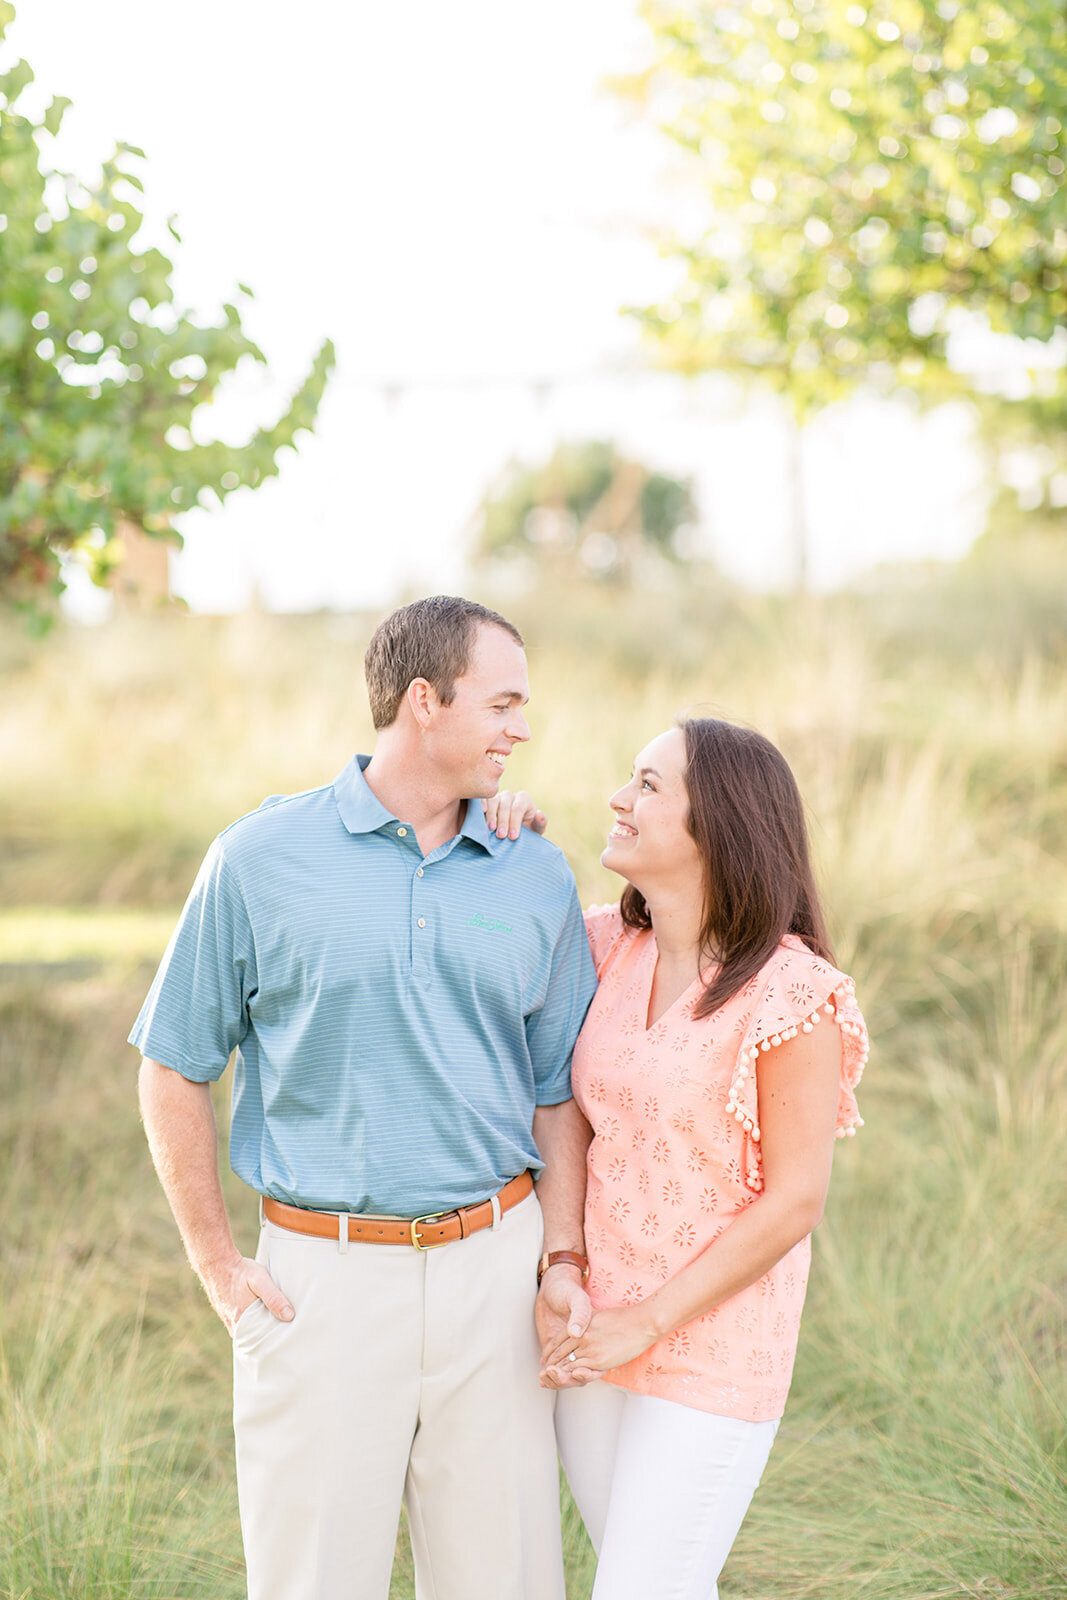 Birmingham, Alabama Wedding Photographers - Katie & Alec Photography Engagement Gallery 5